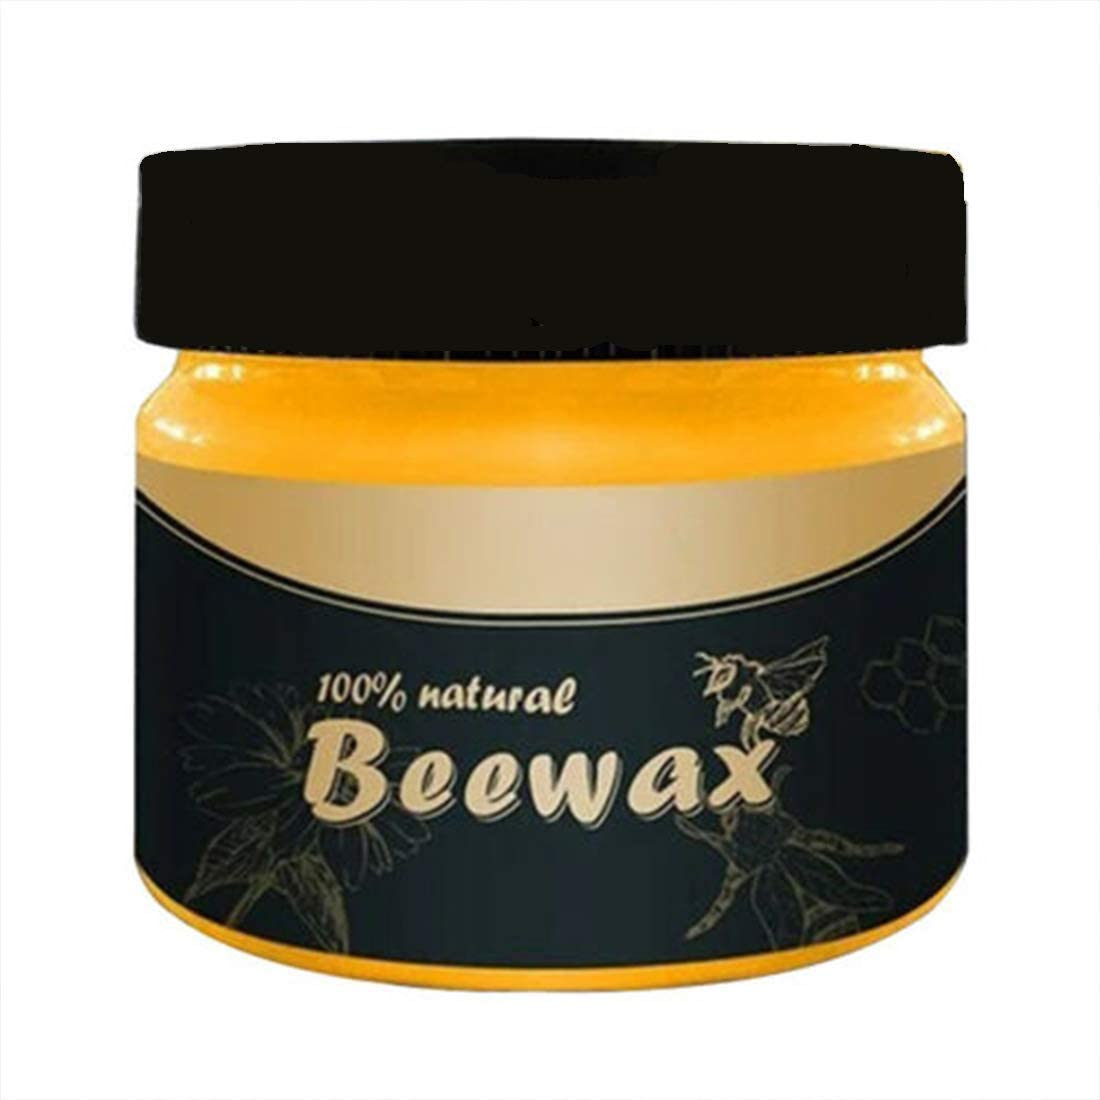 Beeswax Furniture Polish, Wood Seasoning Beewax - Natural Wood Wax Traditional Complete Solution Furniture Care Renew Cutting Boards, Woods, Bamboo, Wooden Surface Beeswax Home Cleaning (1PCS)